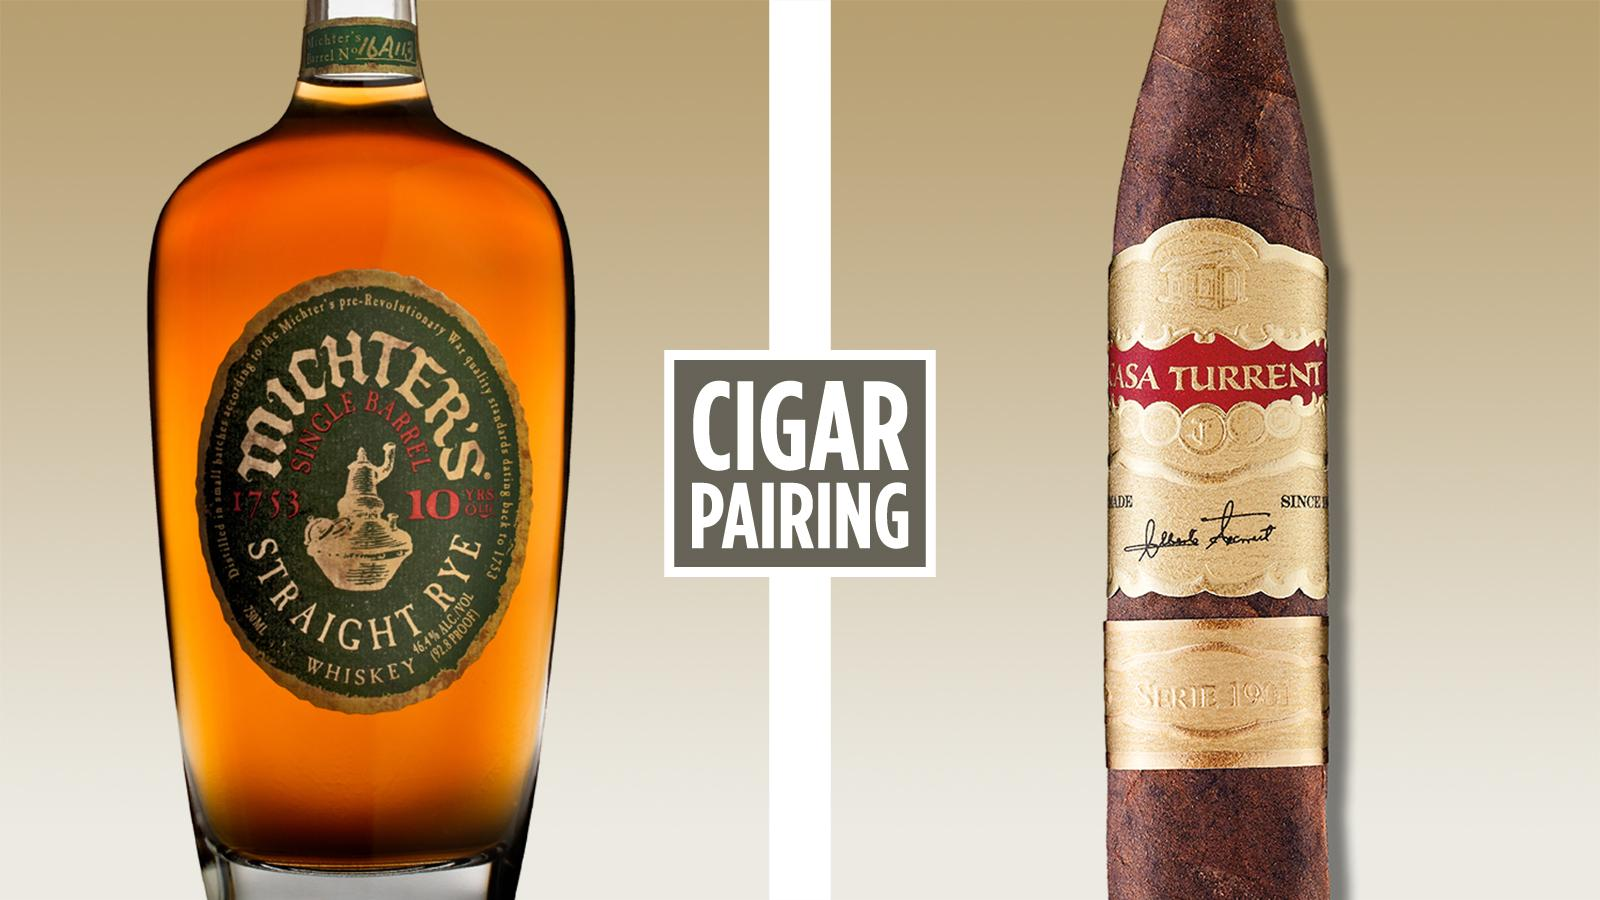 Cigar Pairing: Michter's 10 Year Old Rye